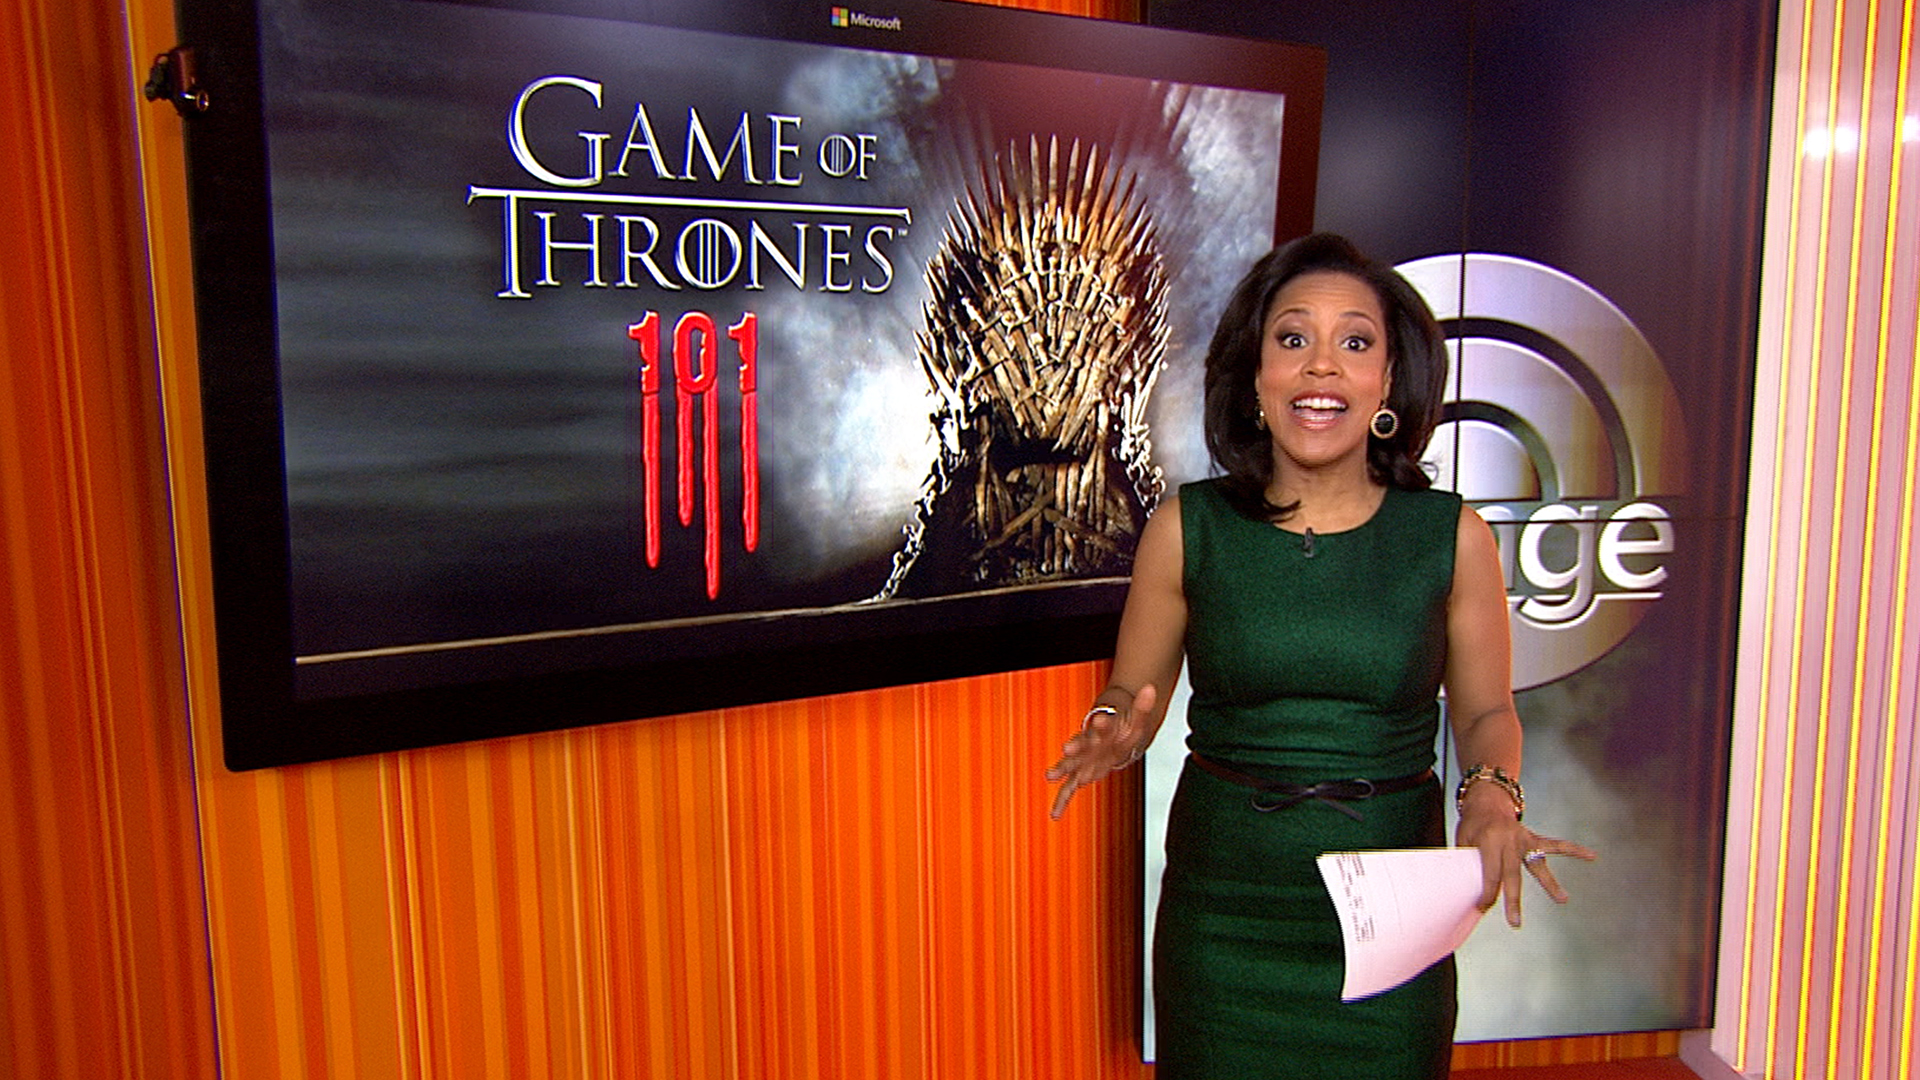 #GOTscience: 'Game of Thrones' Plot Raises a Grisly Burning Question